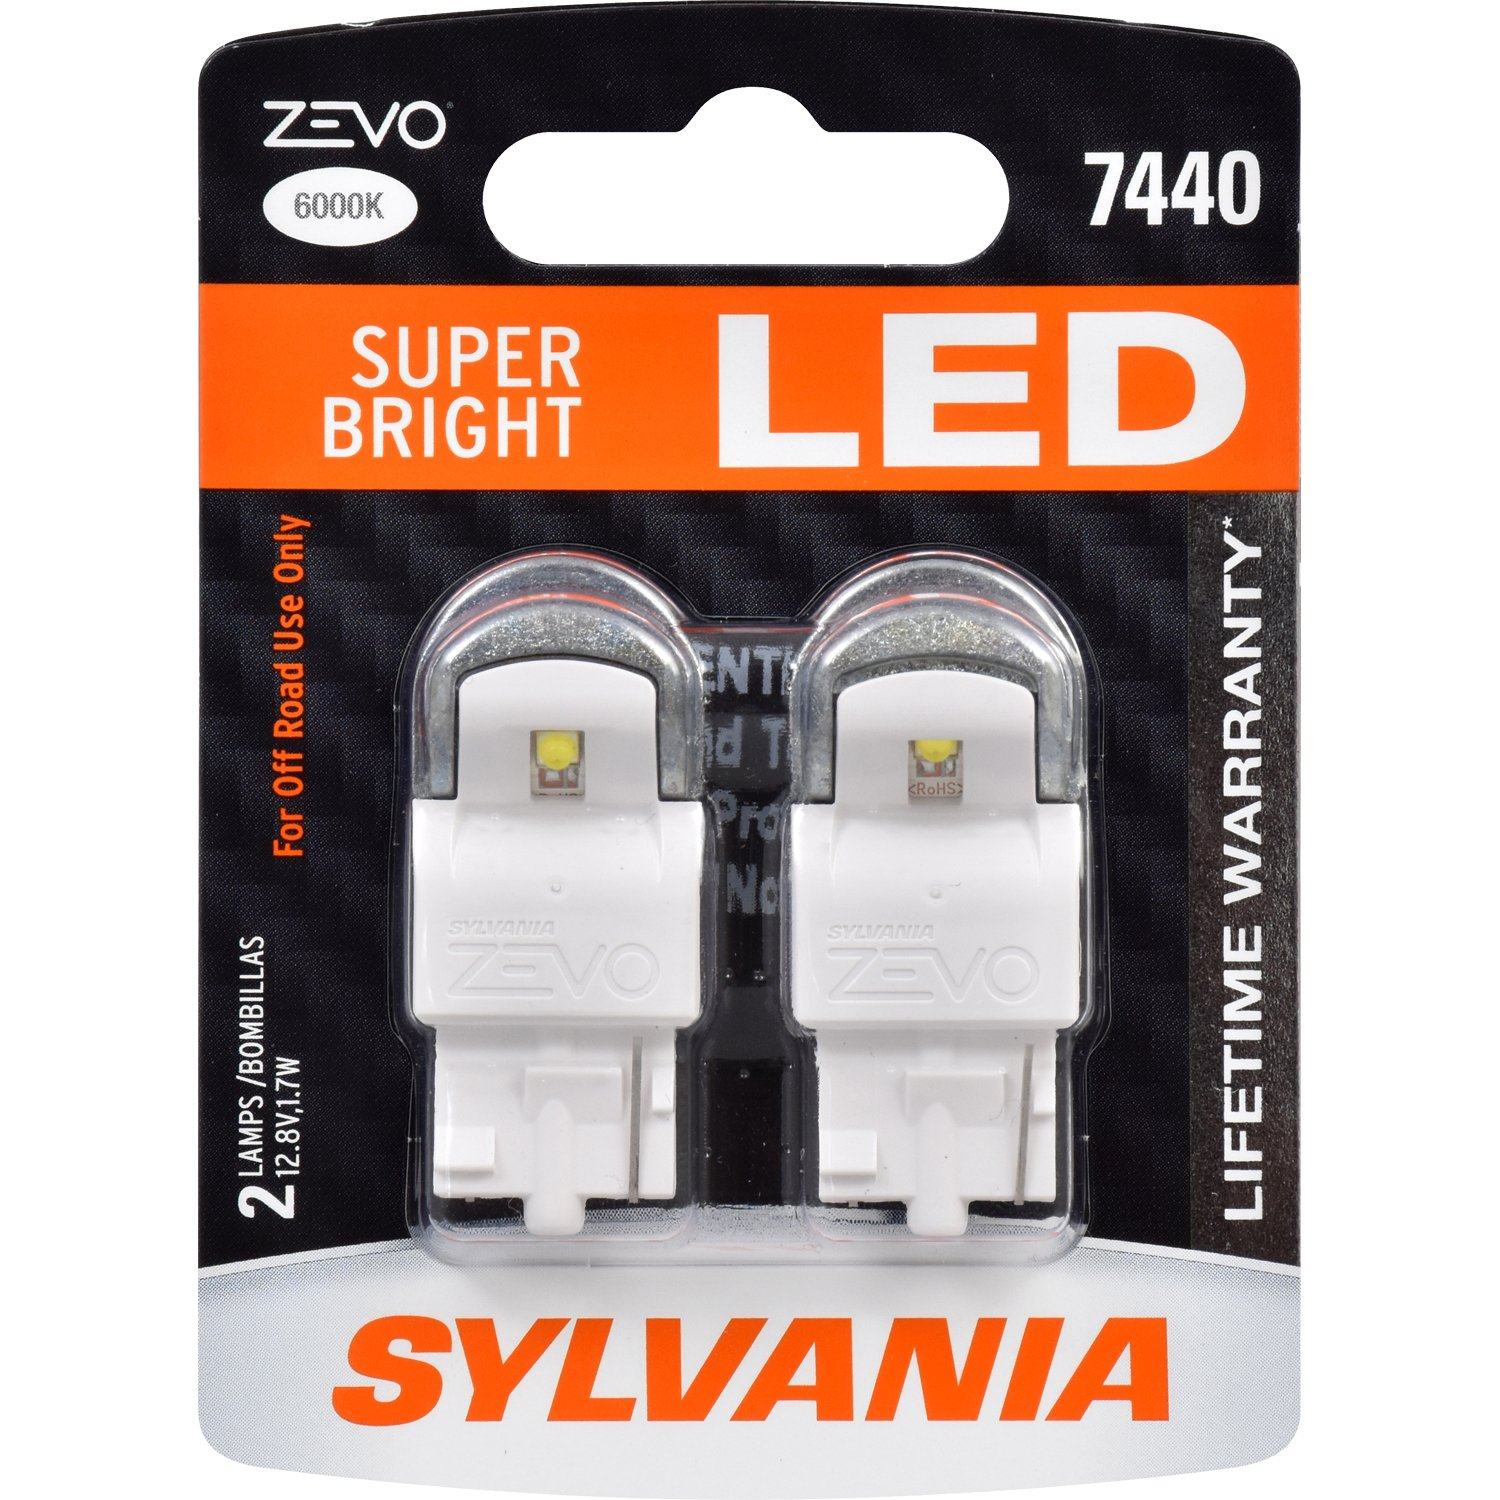 Amazon.com: SYLVANIA - 7440 T20 ZEVO LED Red Bulb - Bright LED Bulb, Ideal for Stop and Tail Lights (Contains 2 Bulbs): Automotive